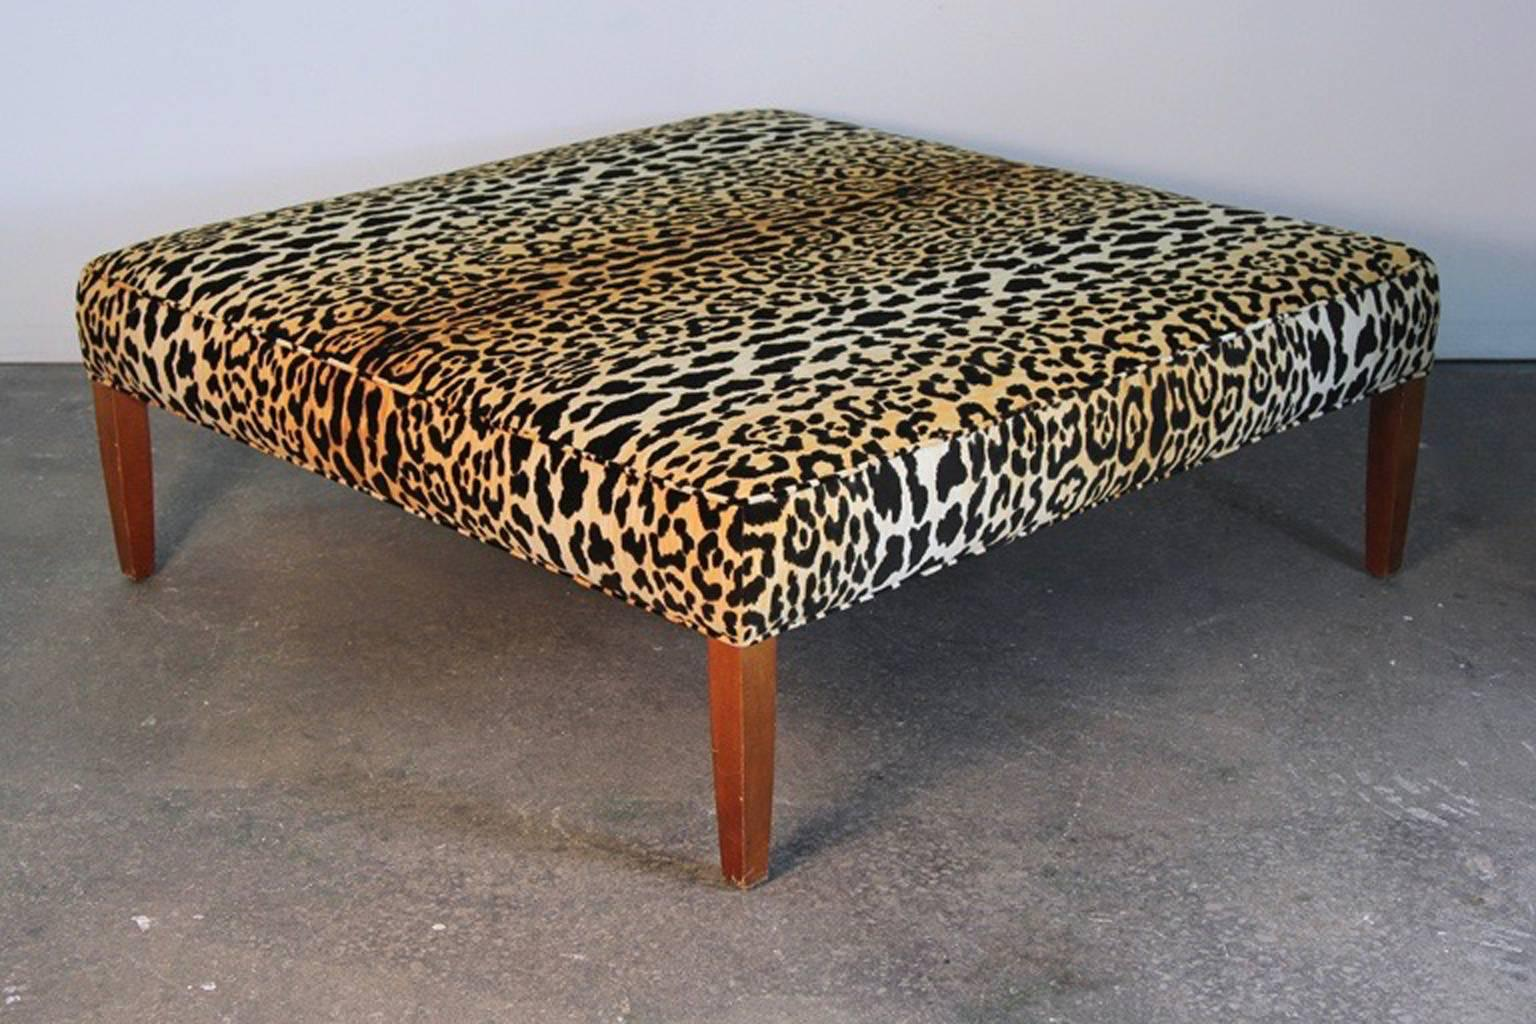 Leopard Print Ottoman Or Coffee Table For Sale 2